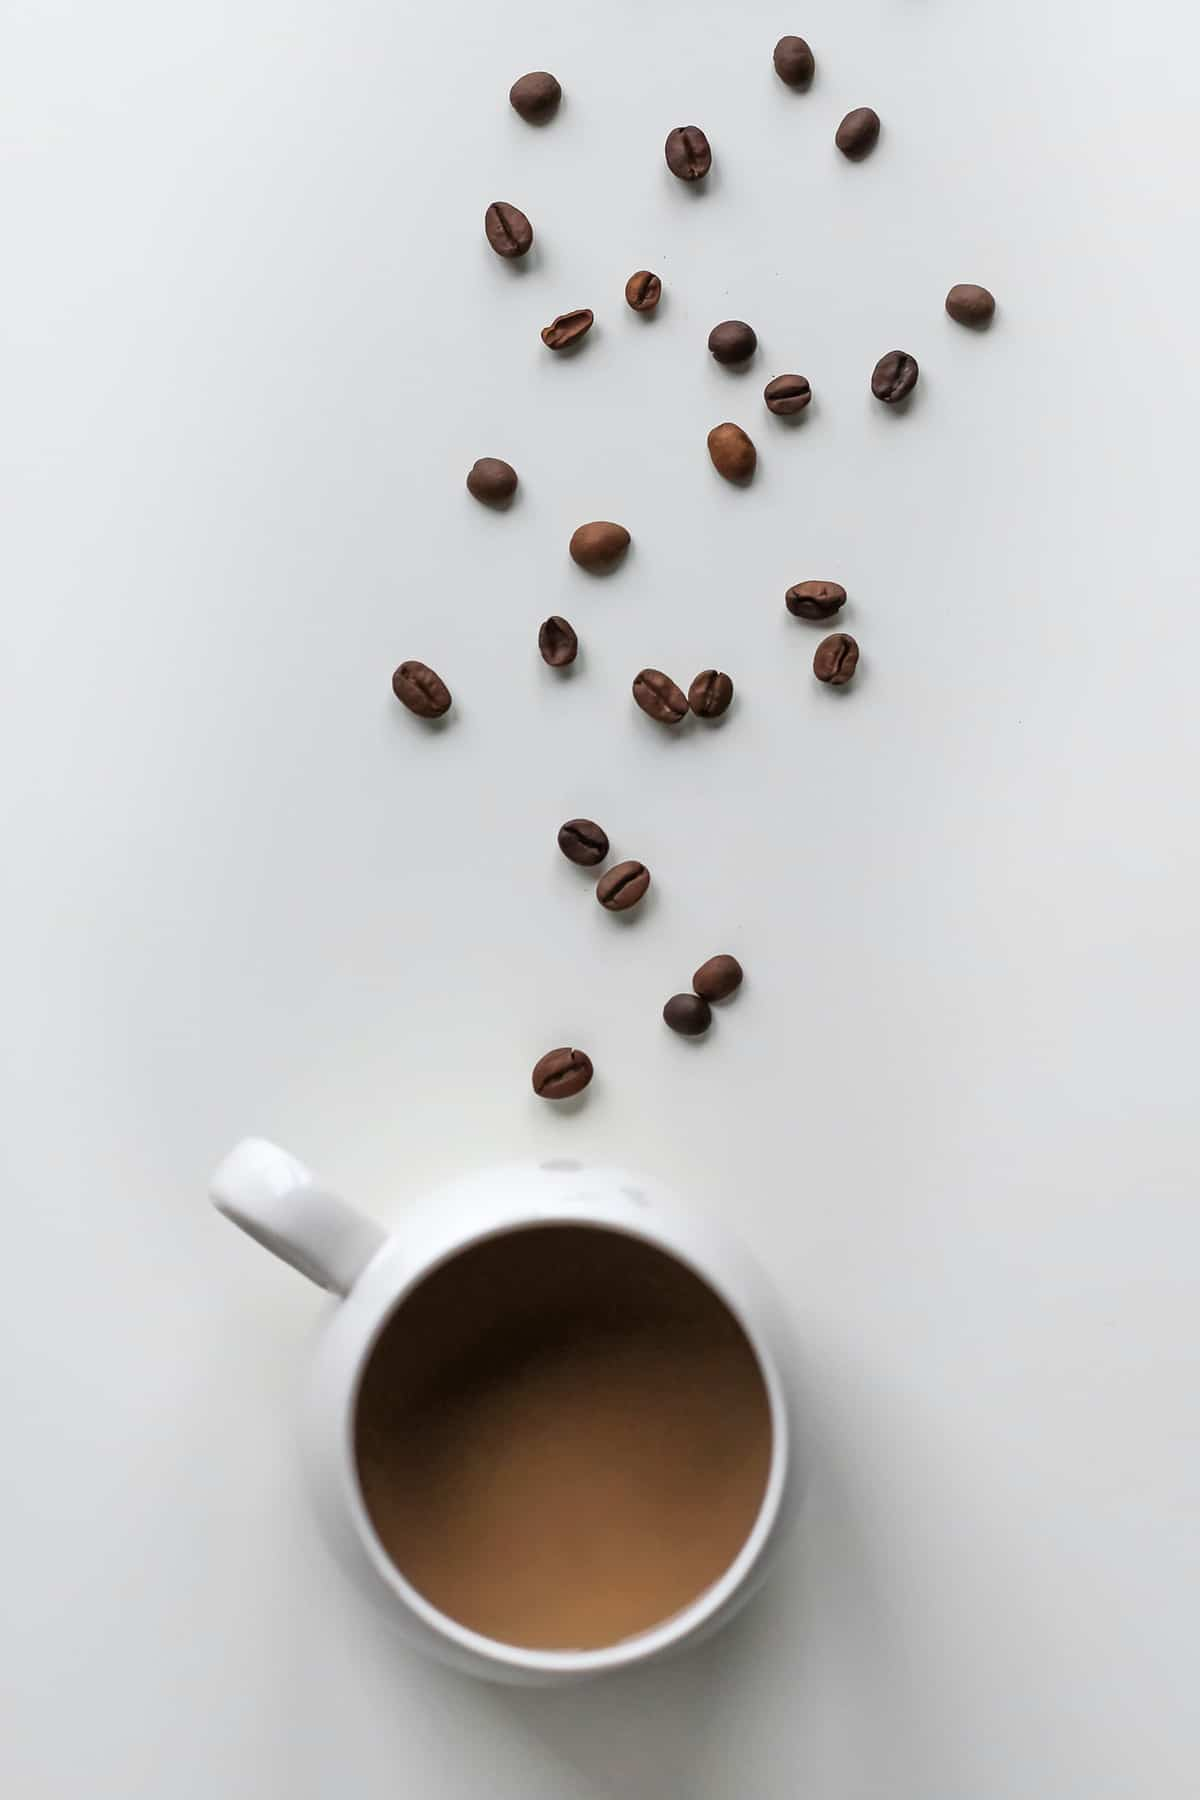 A birds eye view of coffee while intermittent fasting in a white mug with a trail of coffee beans in front of it.